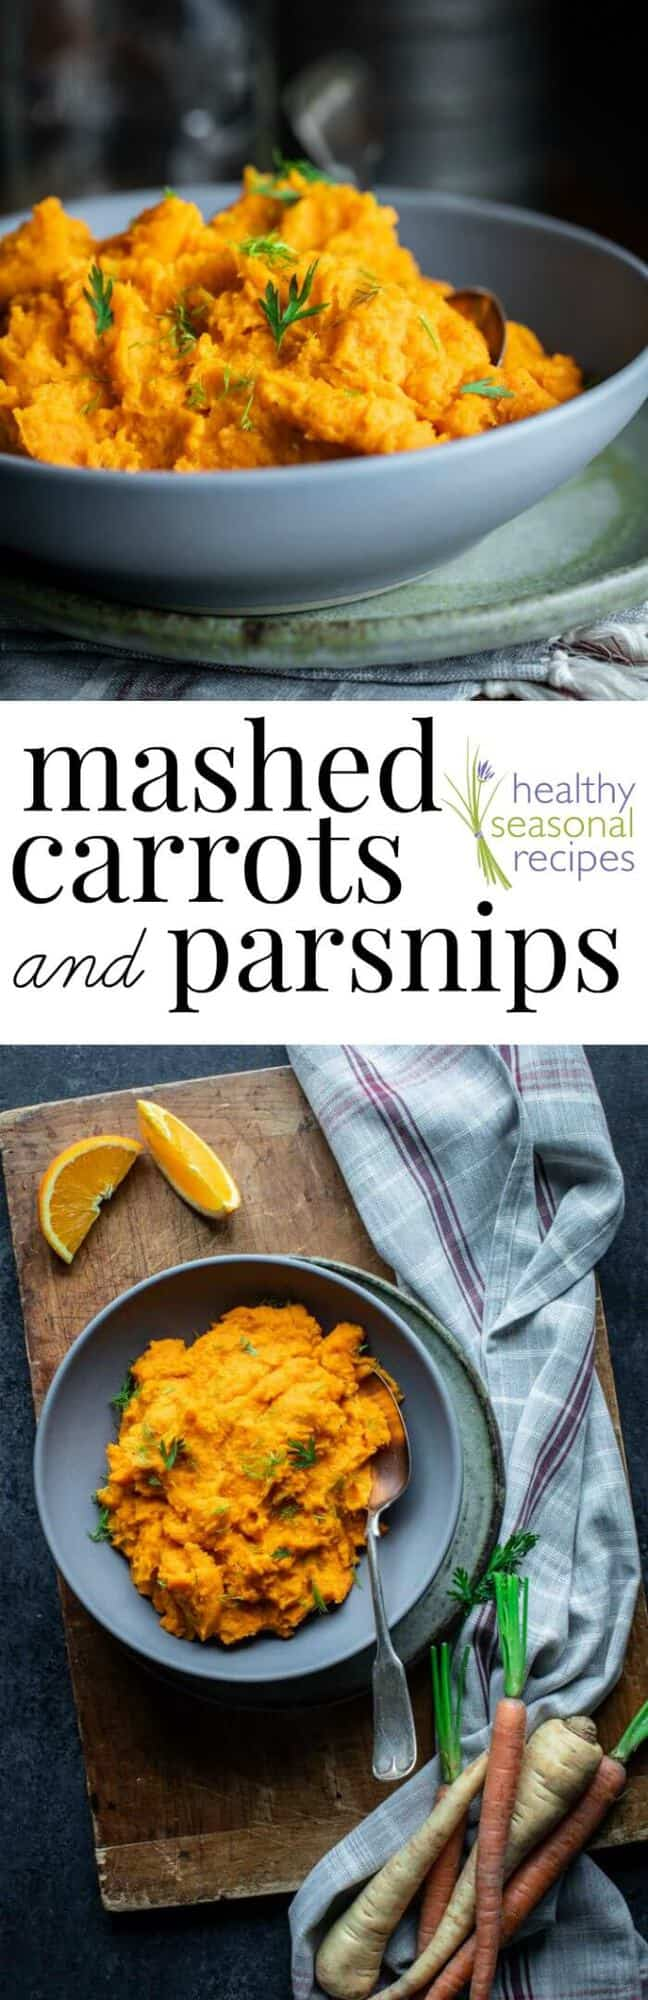 Mashed Carrots and Parsnips, a healthy paleo Irish side dish. This version is dairy-free and also has the addition of orange in it! #healthyseasonal #irish #parsnips #carrots #sidedish #paleo #glutenfree #grainfree #dairyfree